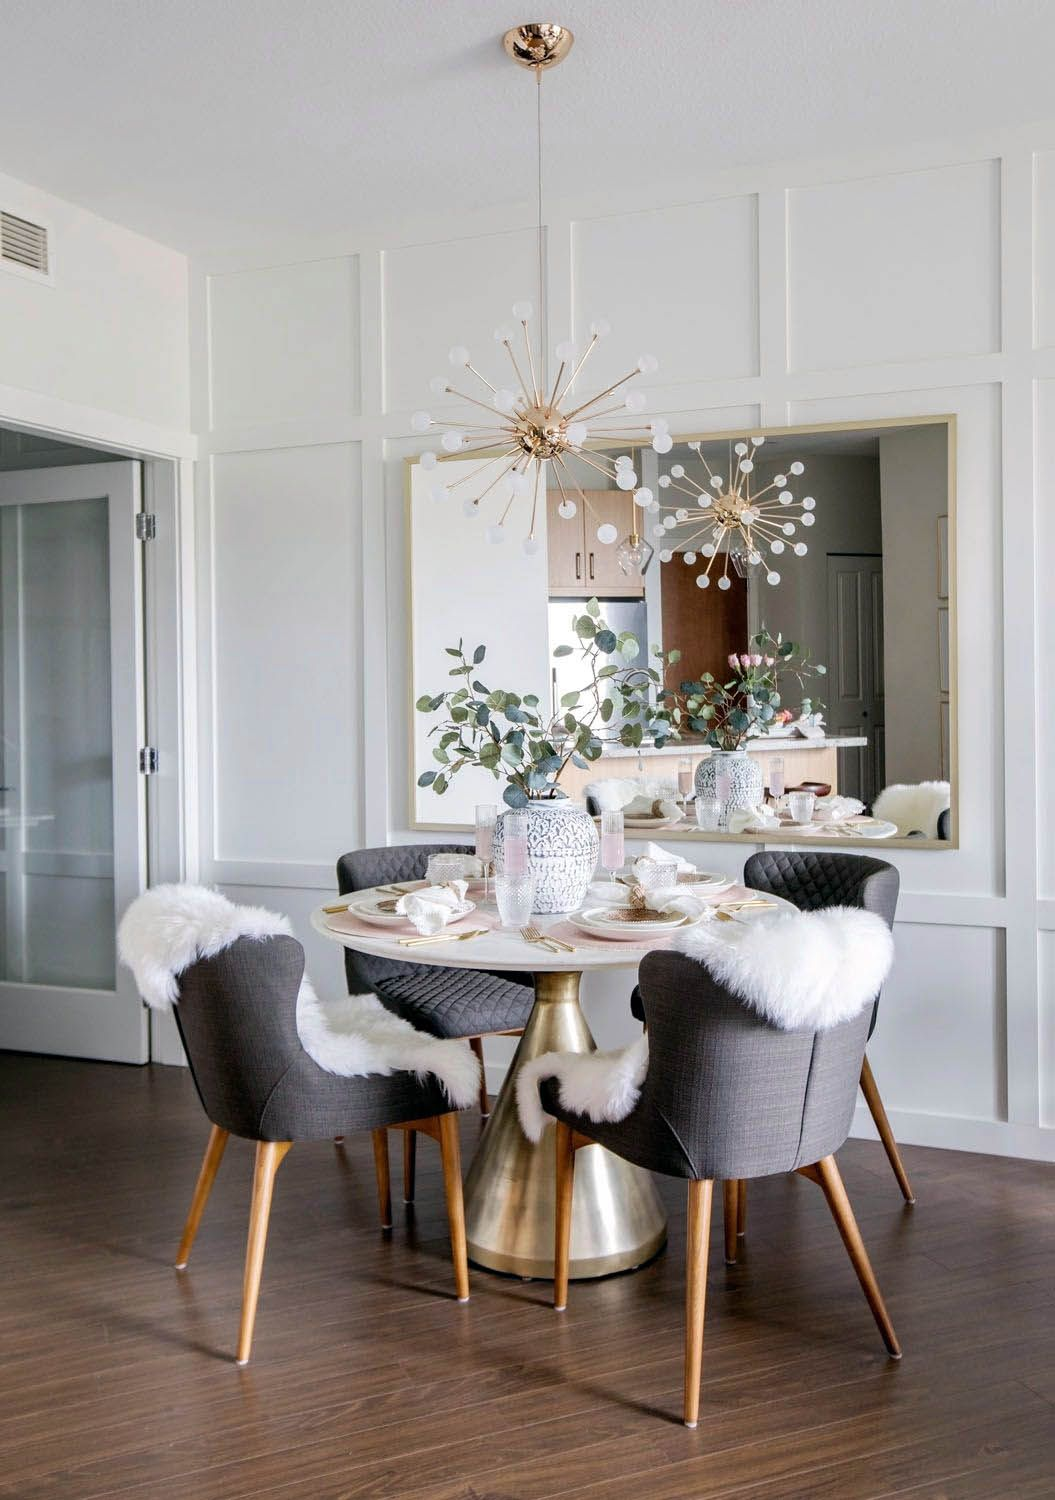 20 Timeless Farmhouse Dining Room Design and Decor Ideas that are Simply Charming #farmhousediningroom